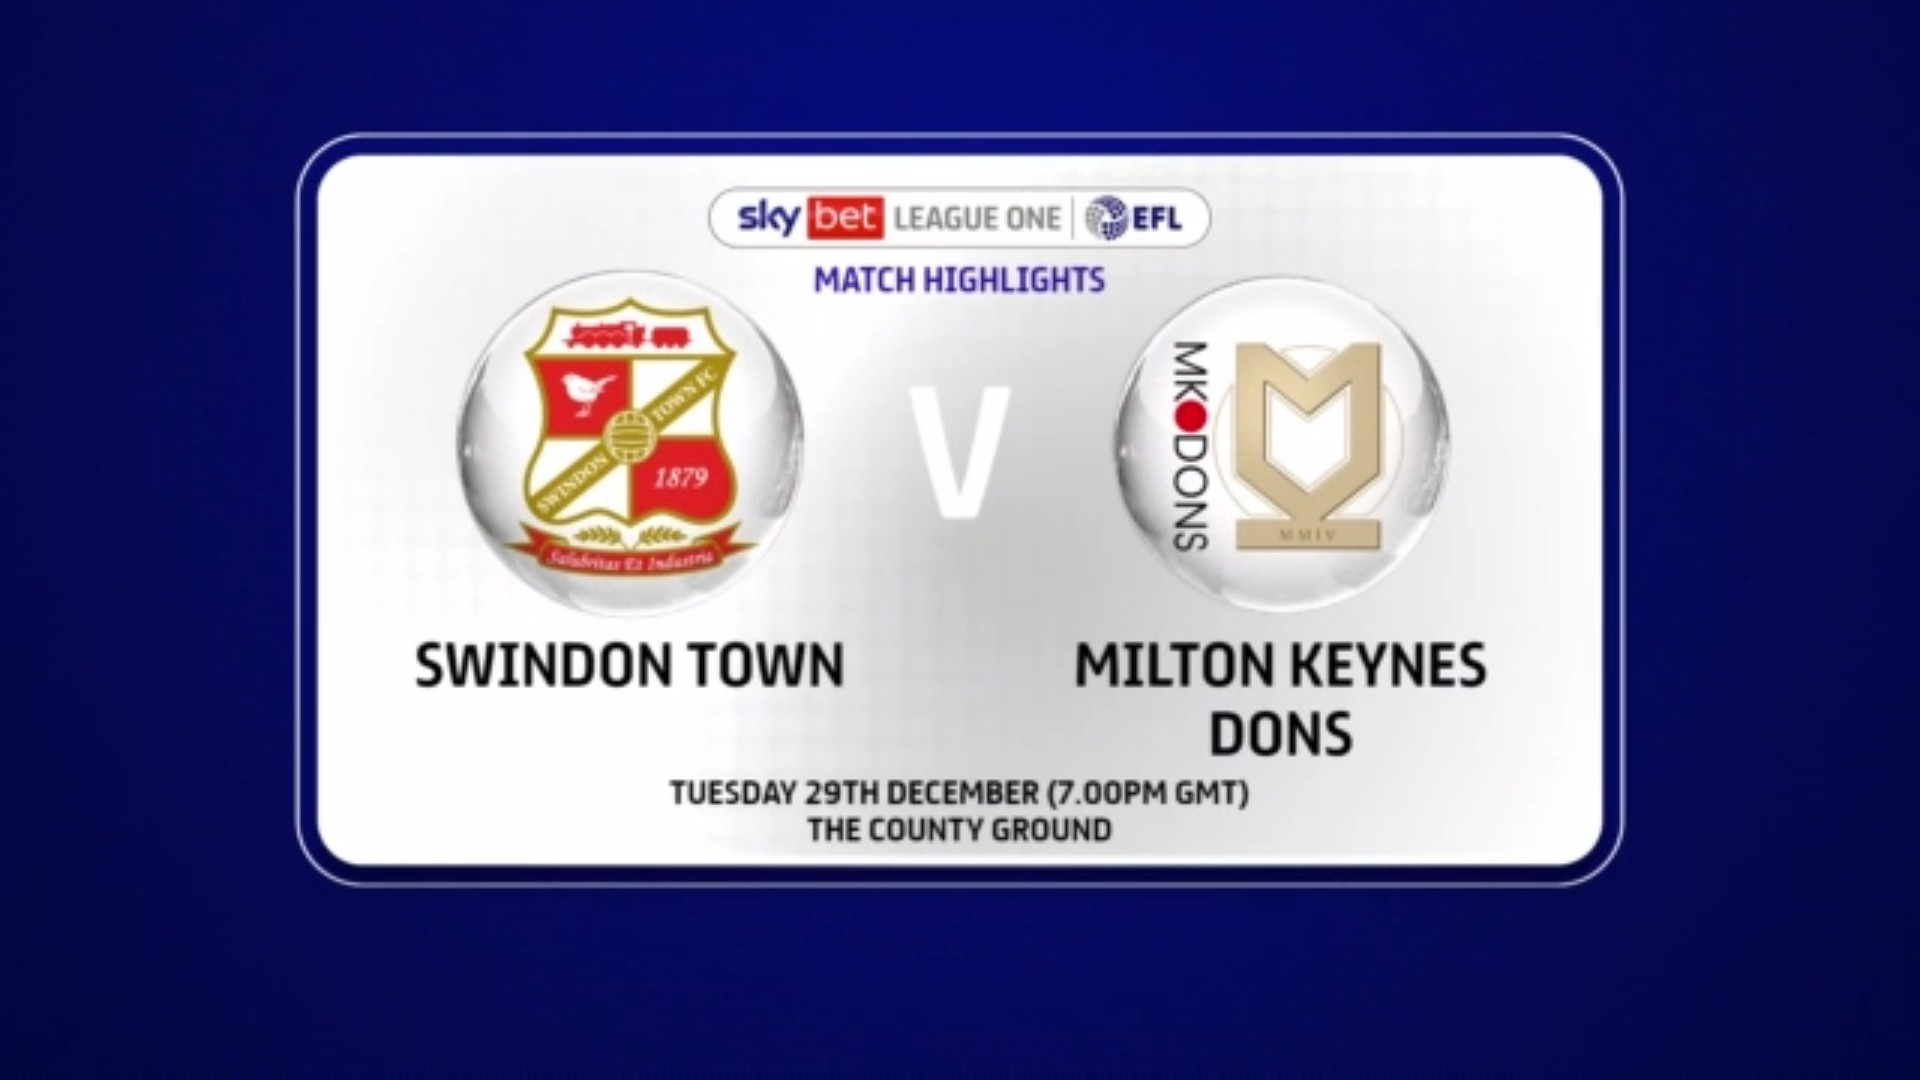 Mk dons v swindon betting trends over and under soccer betting predictions